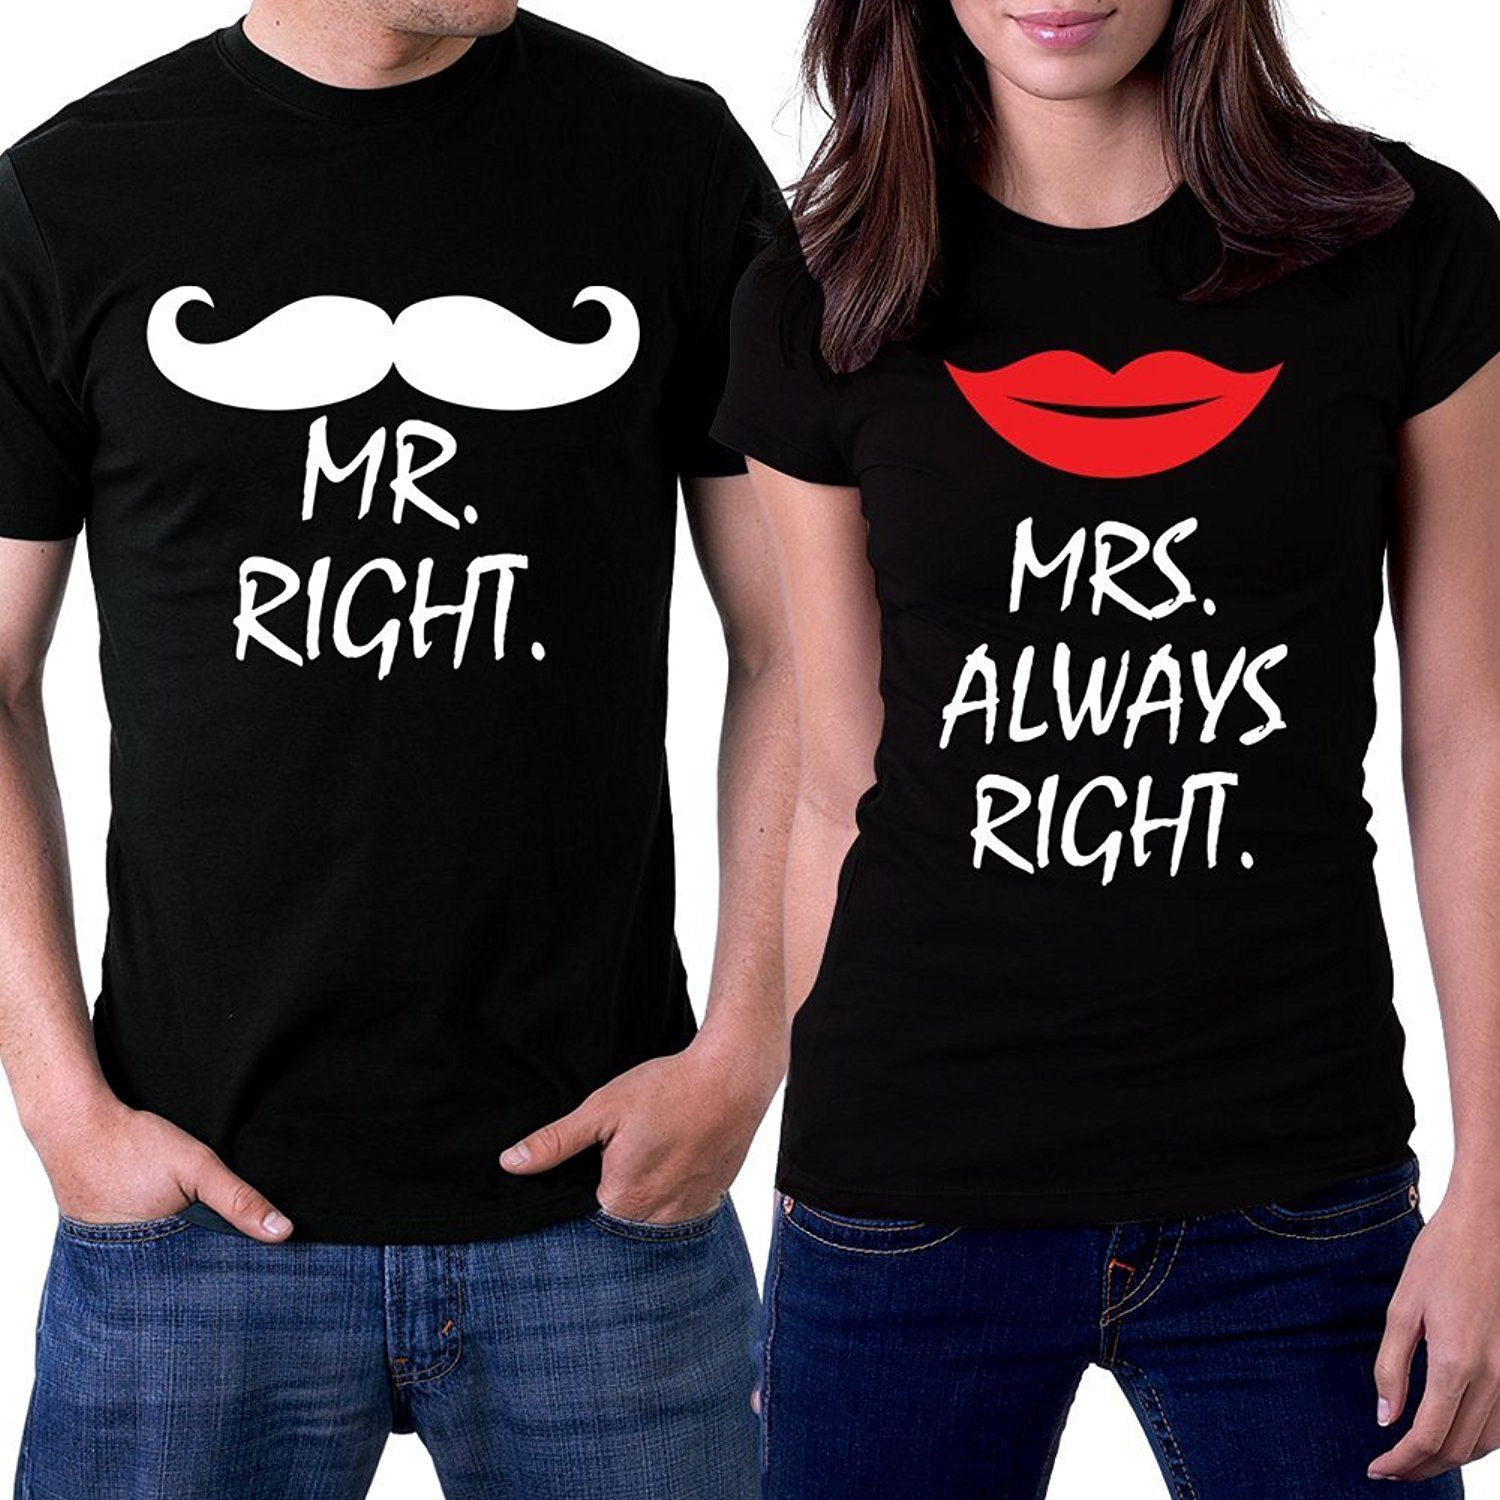 Mr Right - Mrs Always Right (front) and Together Since (back) Funny Couples Shirt Set Family Engagement Married Wedding Gift TxqapgWc9